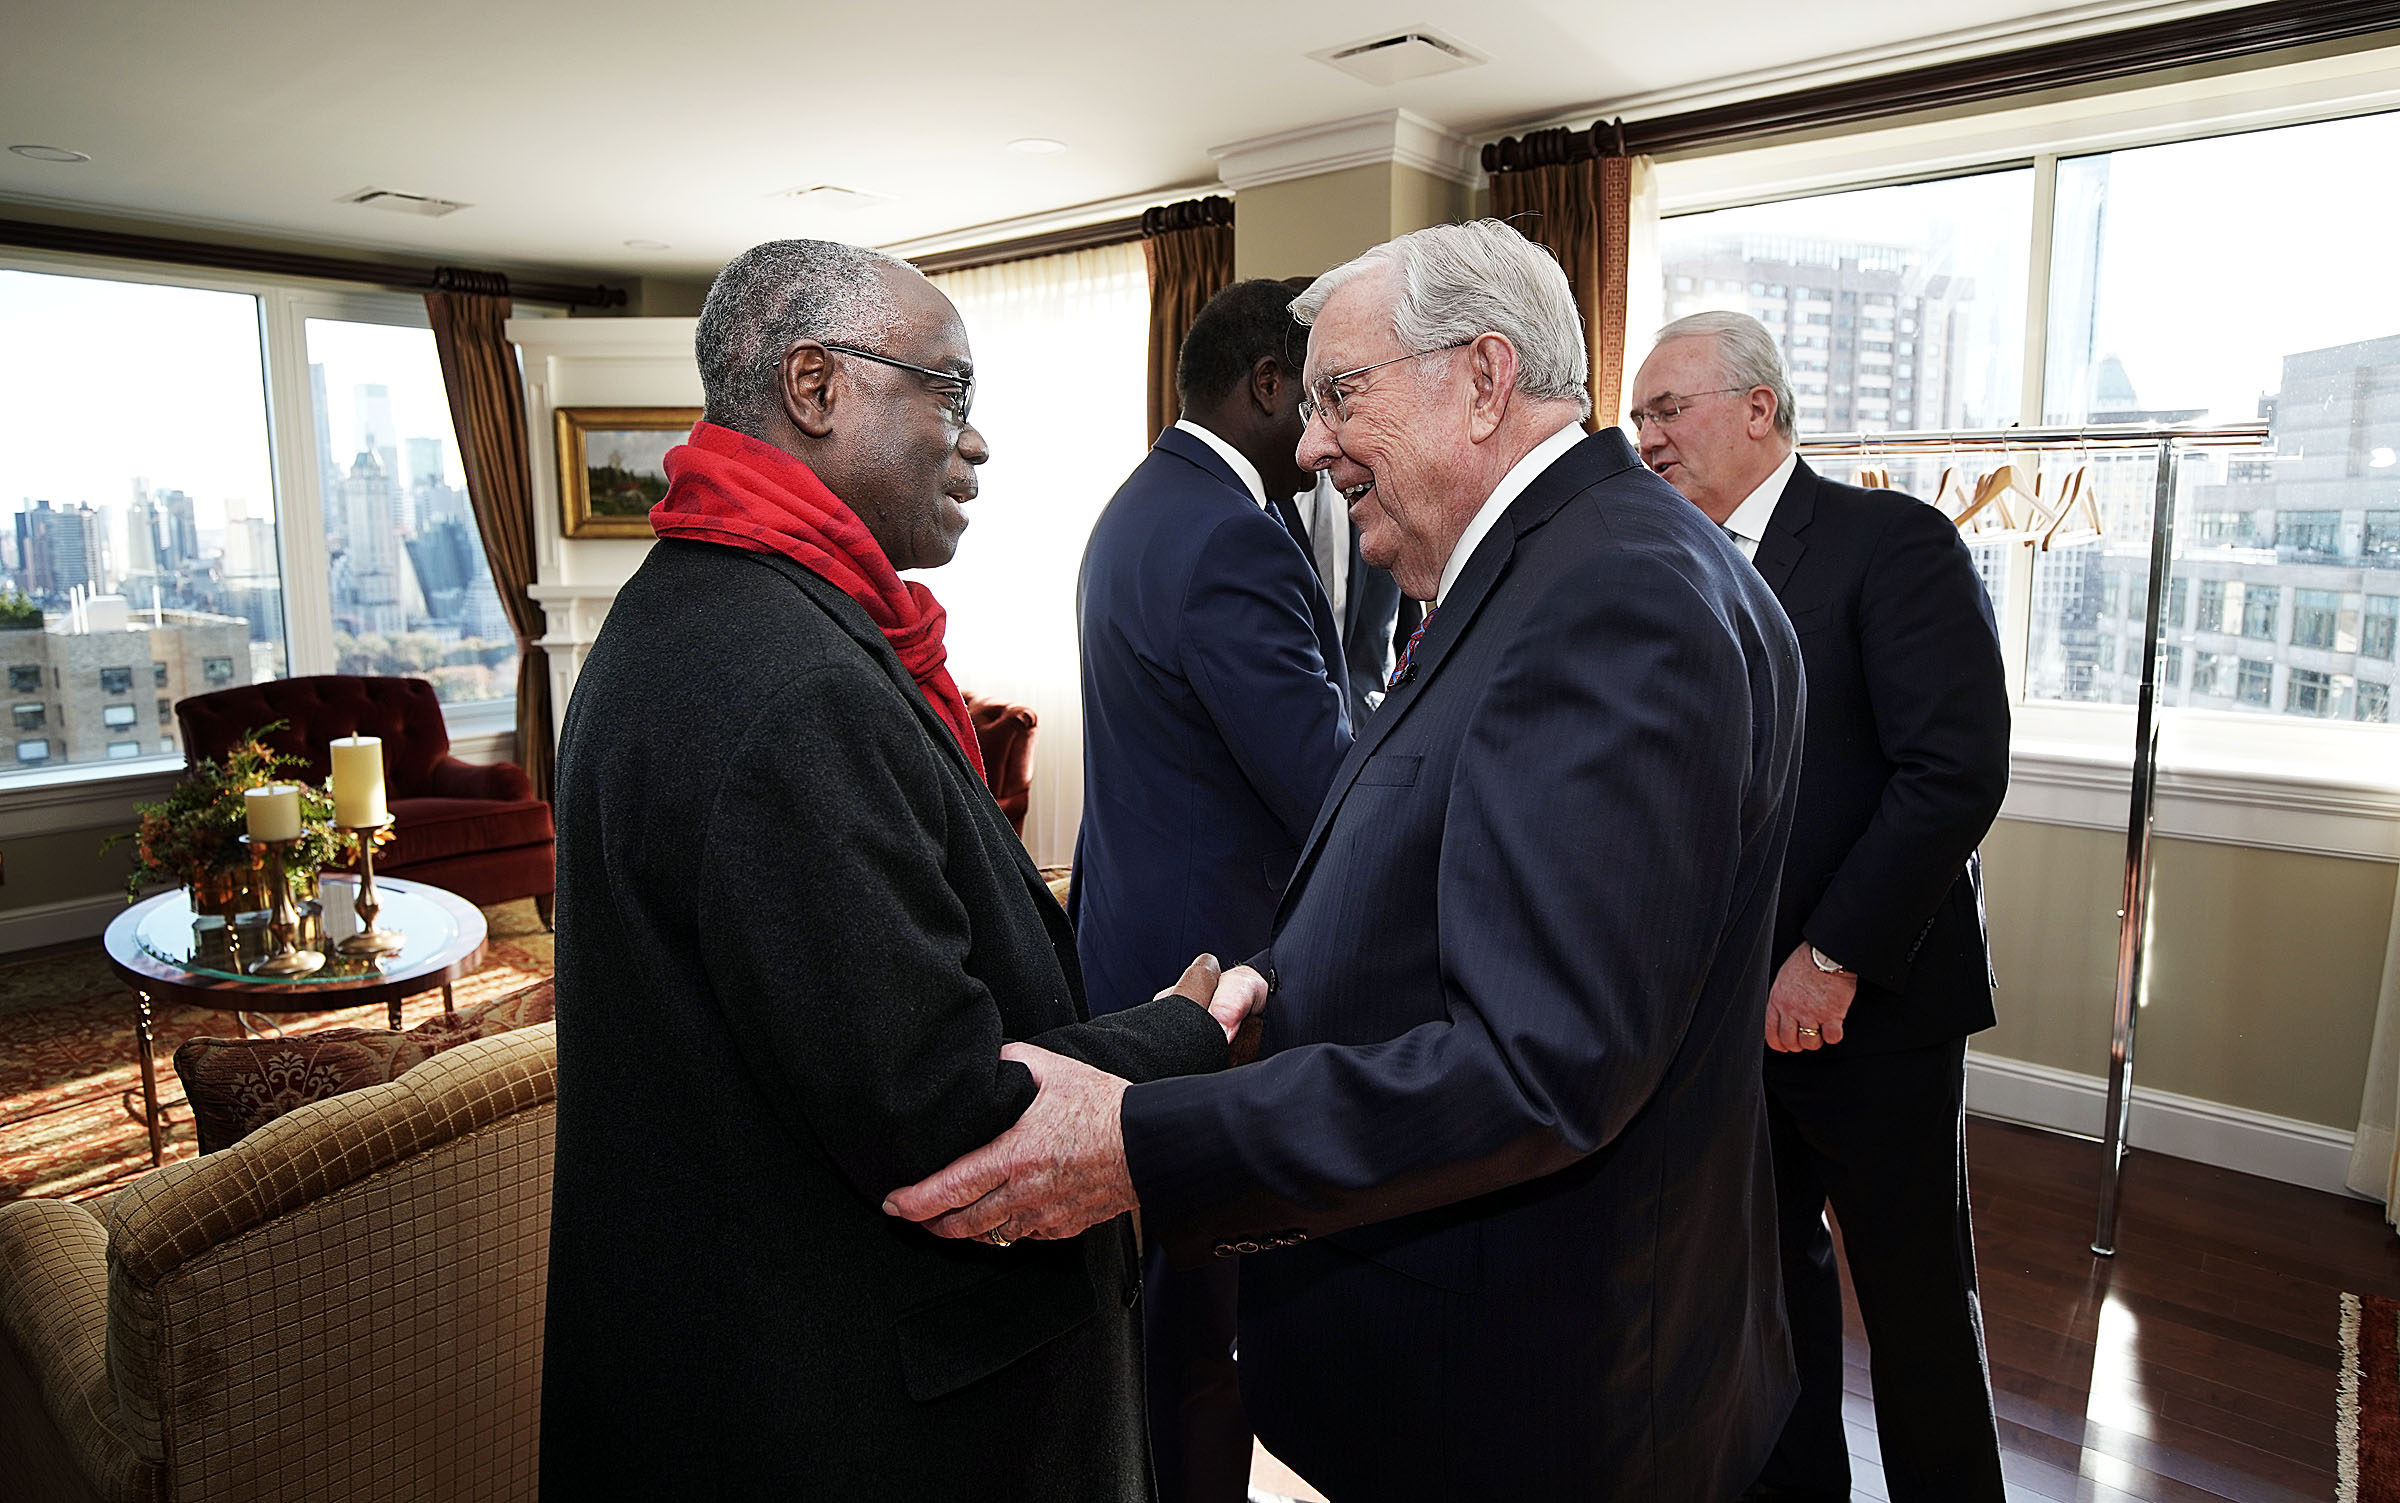 President M. Russell Ballard, acting president of the Quorum of the Twelve Apostles of The Church of Jesus Christ of Latter-day Saints, right, greets Koné Tanou, permanent observer to the United Nations from the Economic Community of West African States, in New York City on Saturday, Nov. 16, 2019. At right back, Elder Jack N. Gerard, a General Authority Seventy, greets Abdou Abarry, ambassador to the U.N. from Niger.